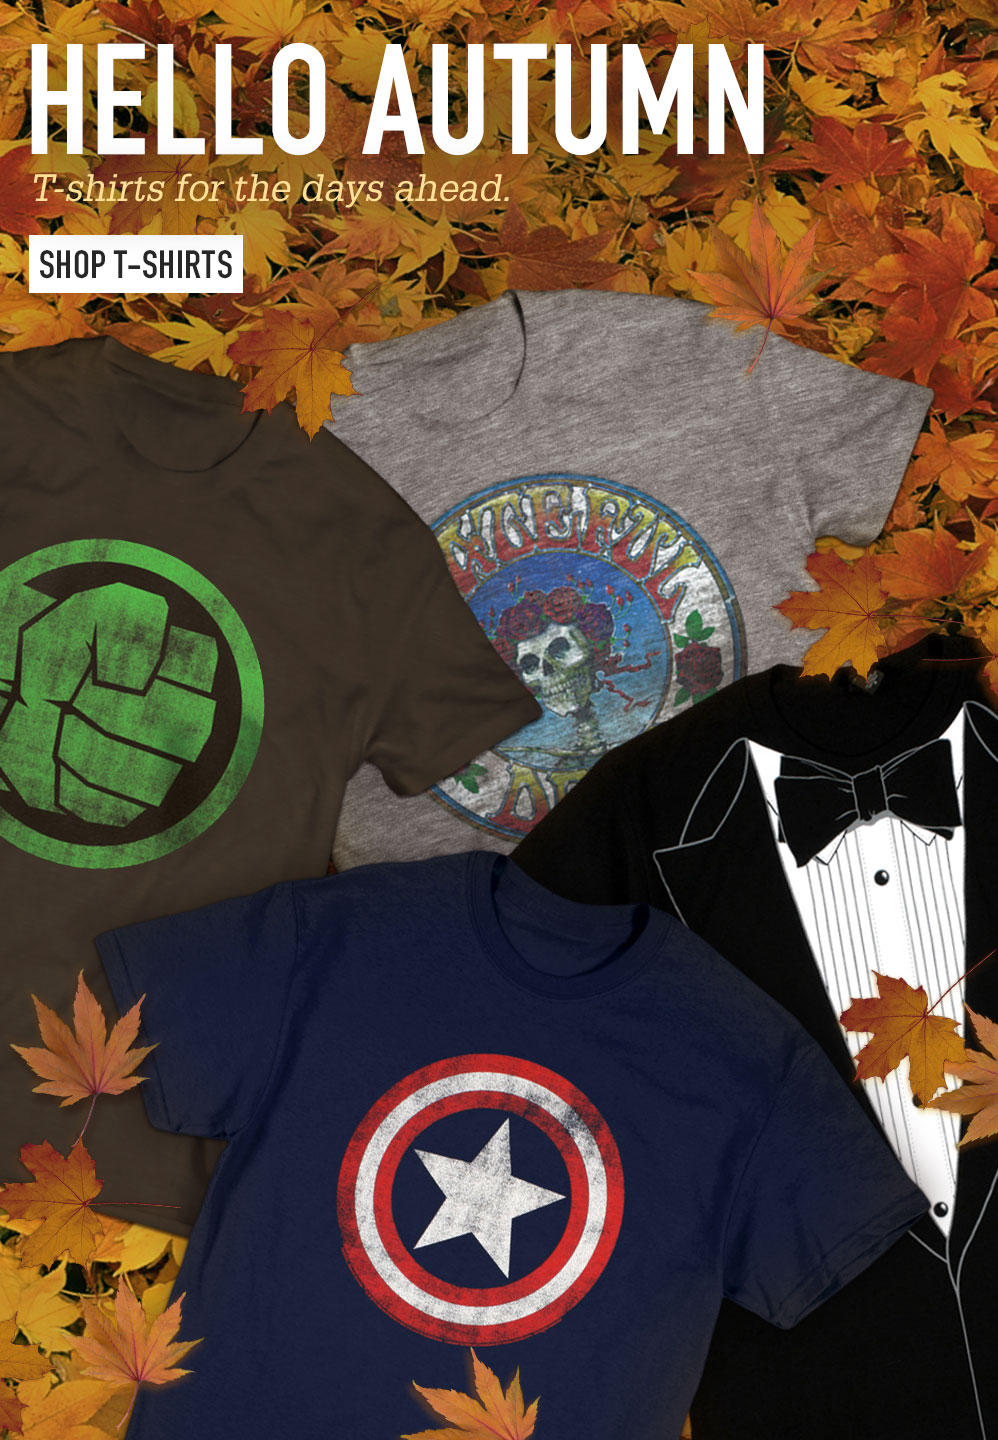 HELLO AUTUMN. T-shirts for the days ahead. SHOP T-SHIRTS